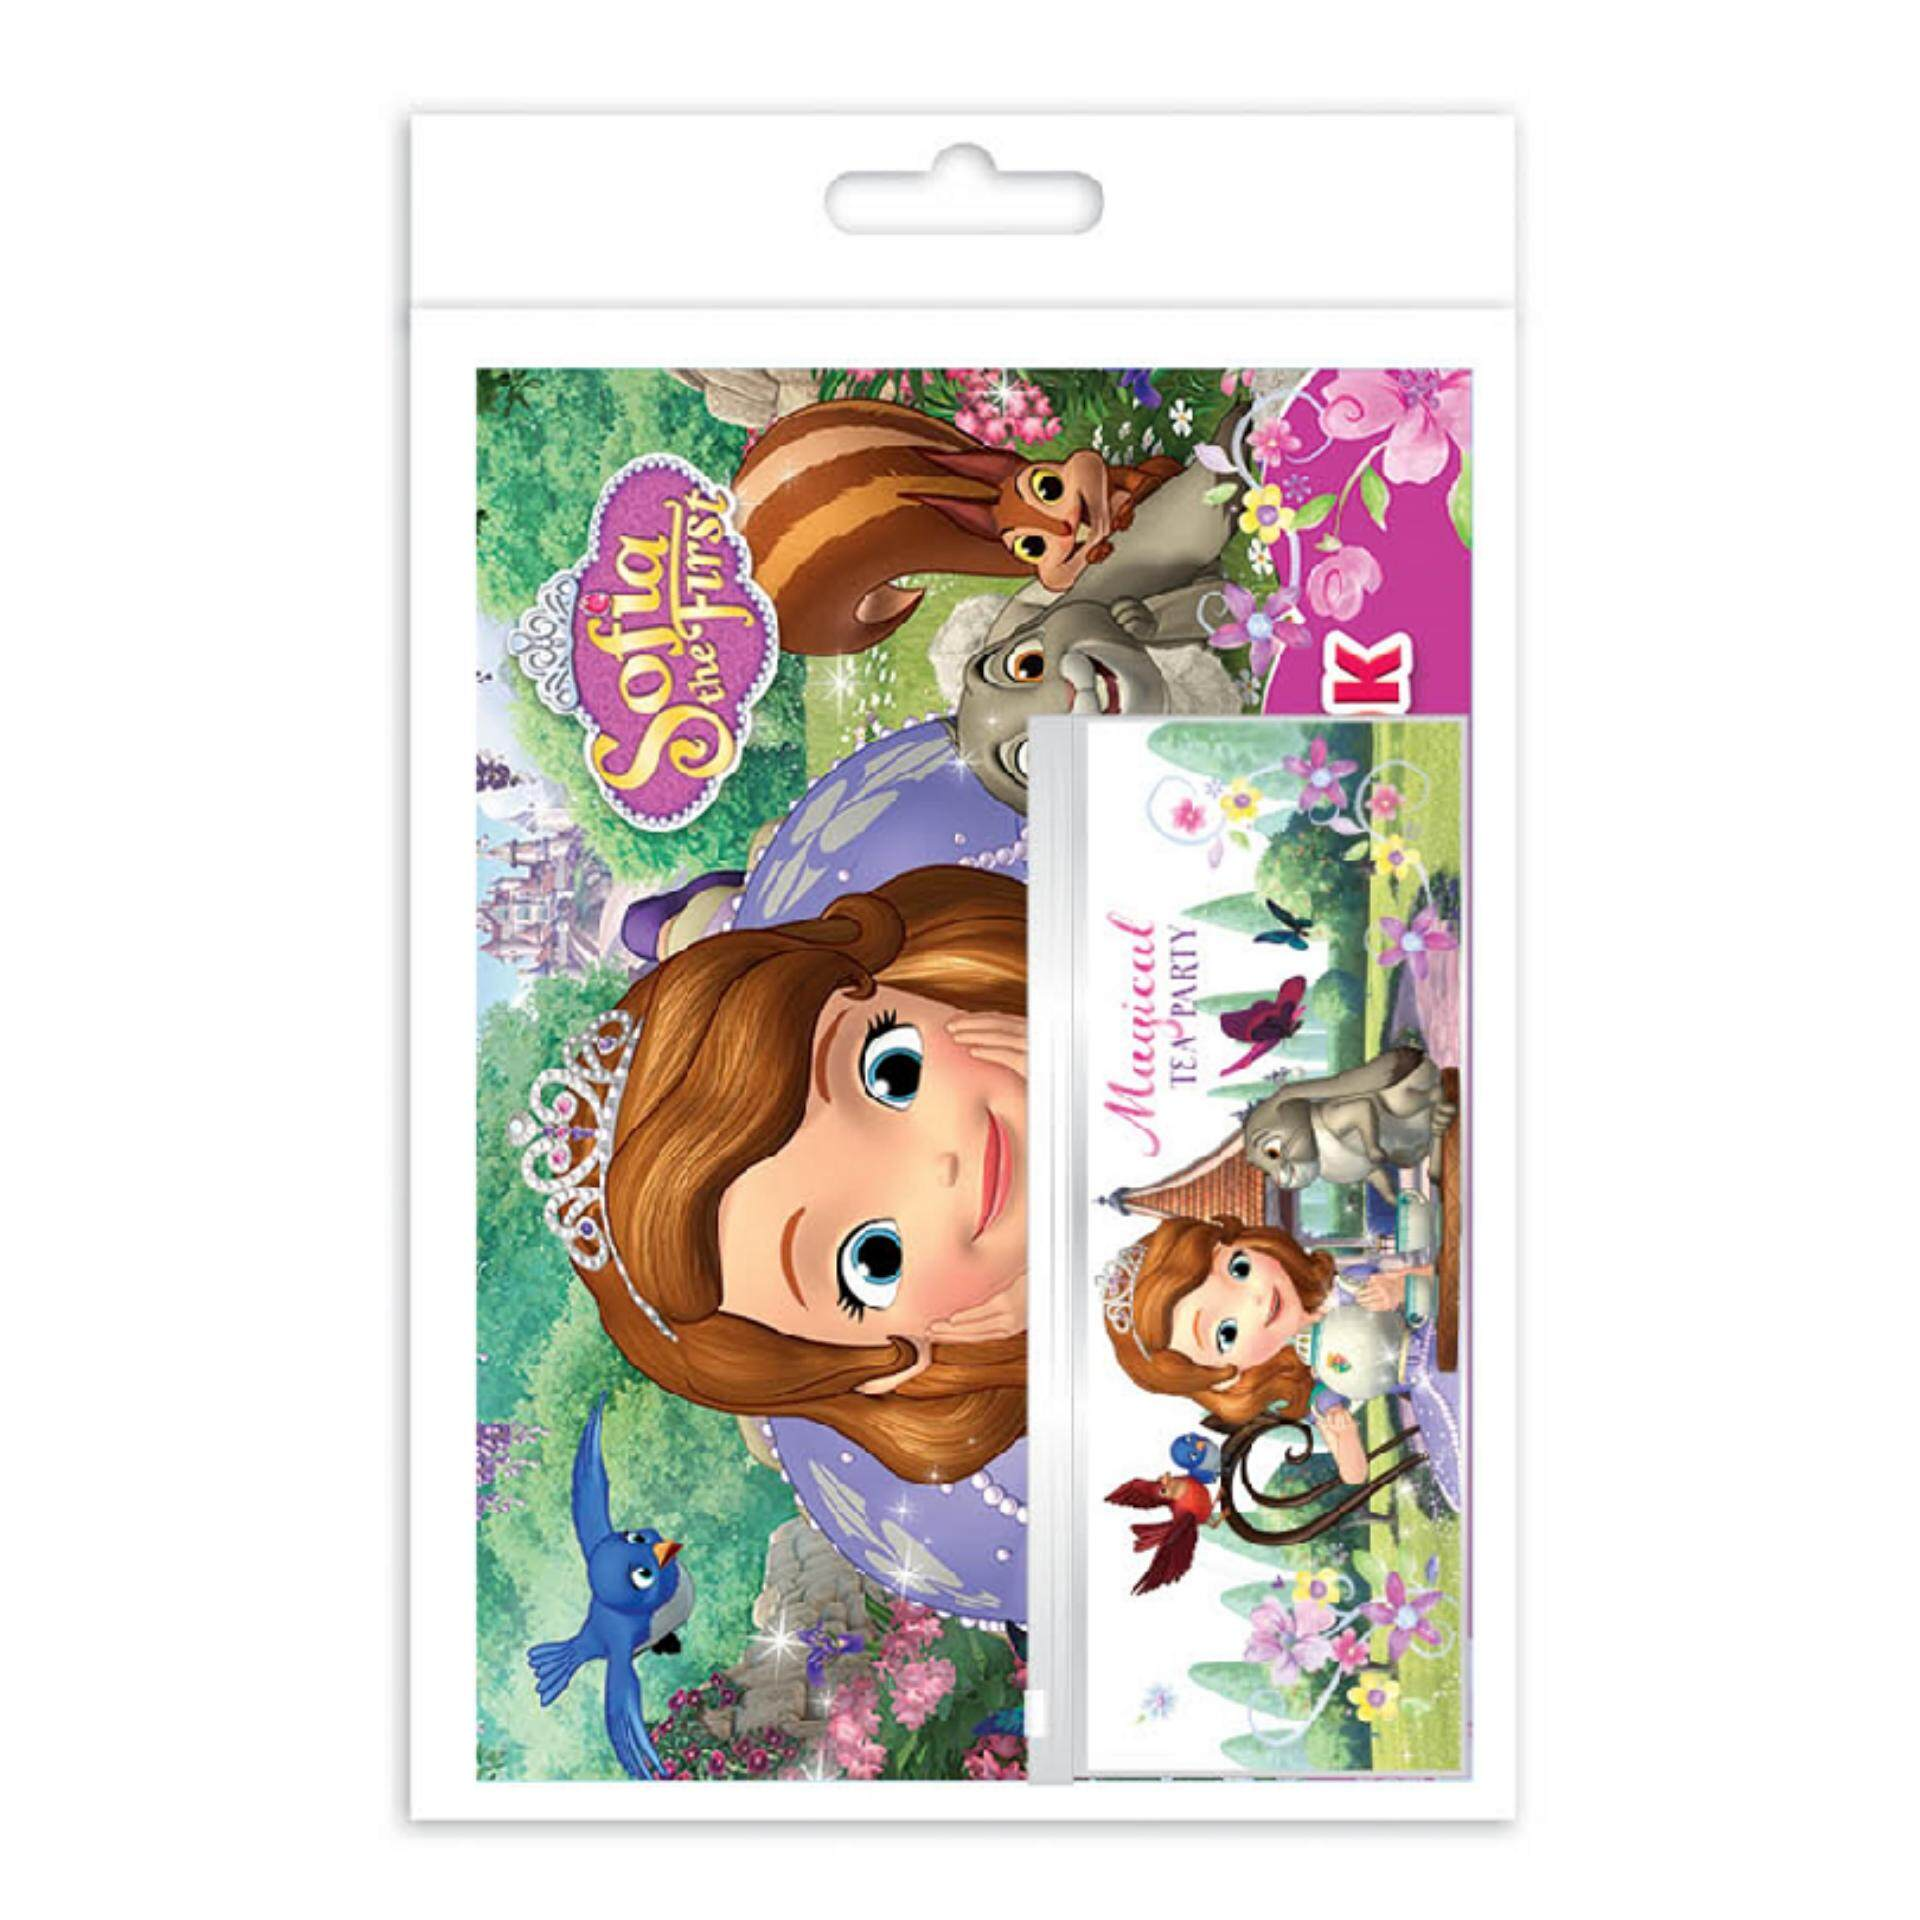 Komic New Arrival Kate Spade Small Rachelle Brightwater Drive Spring Bloom Green Hijau Disney Sofia Colouring Book Set And Purple Colour